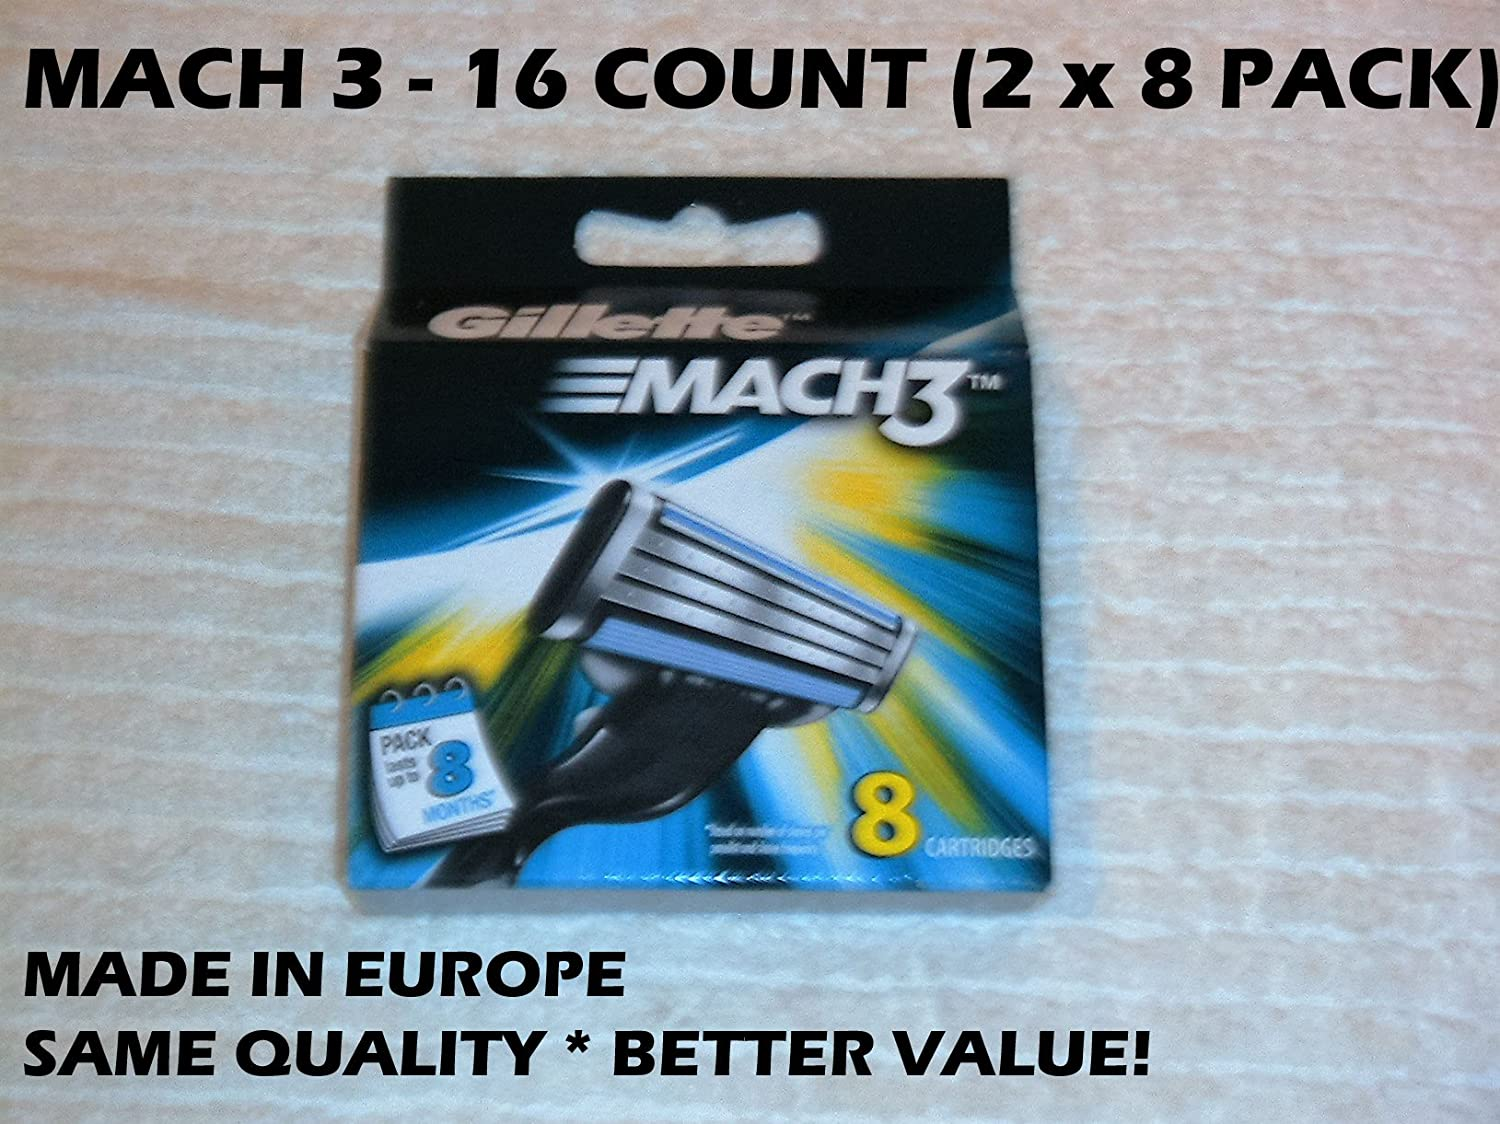 Gillette MACH 3 Refill Cartridges - 8 ct - 2 pk